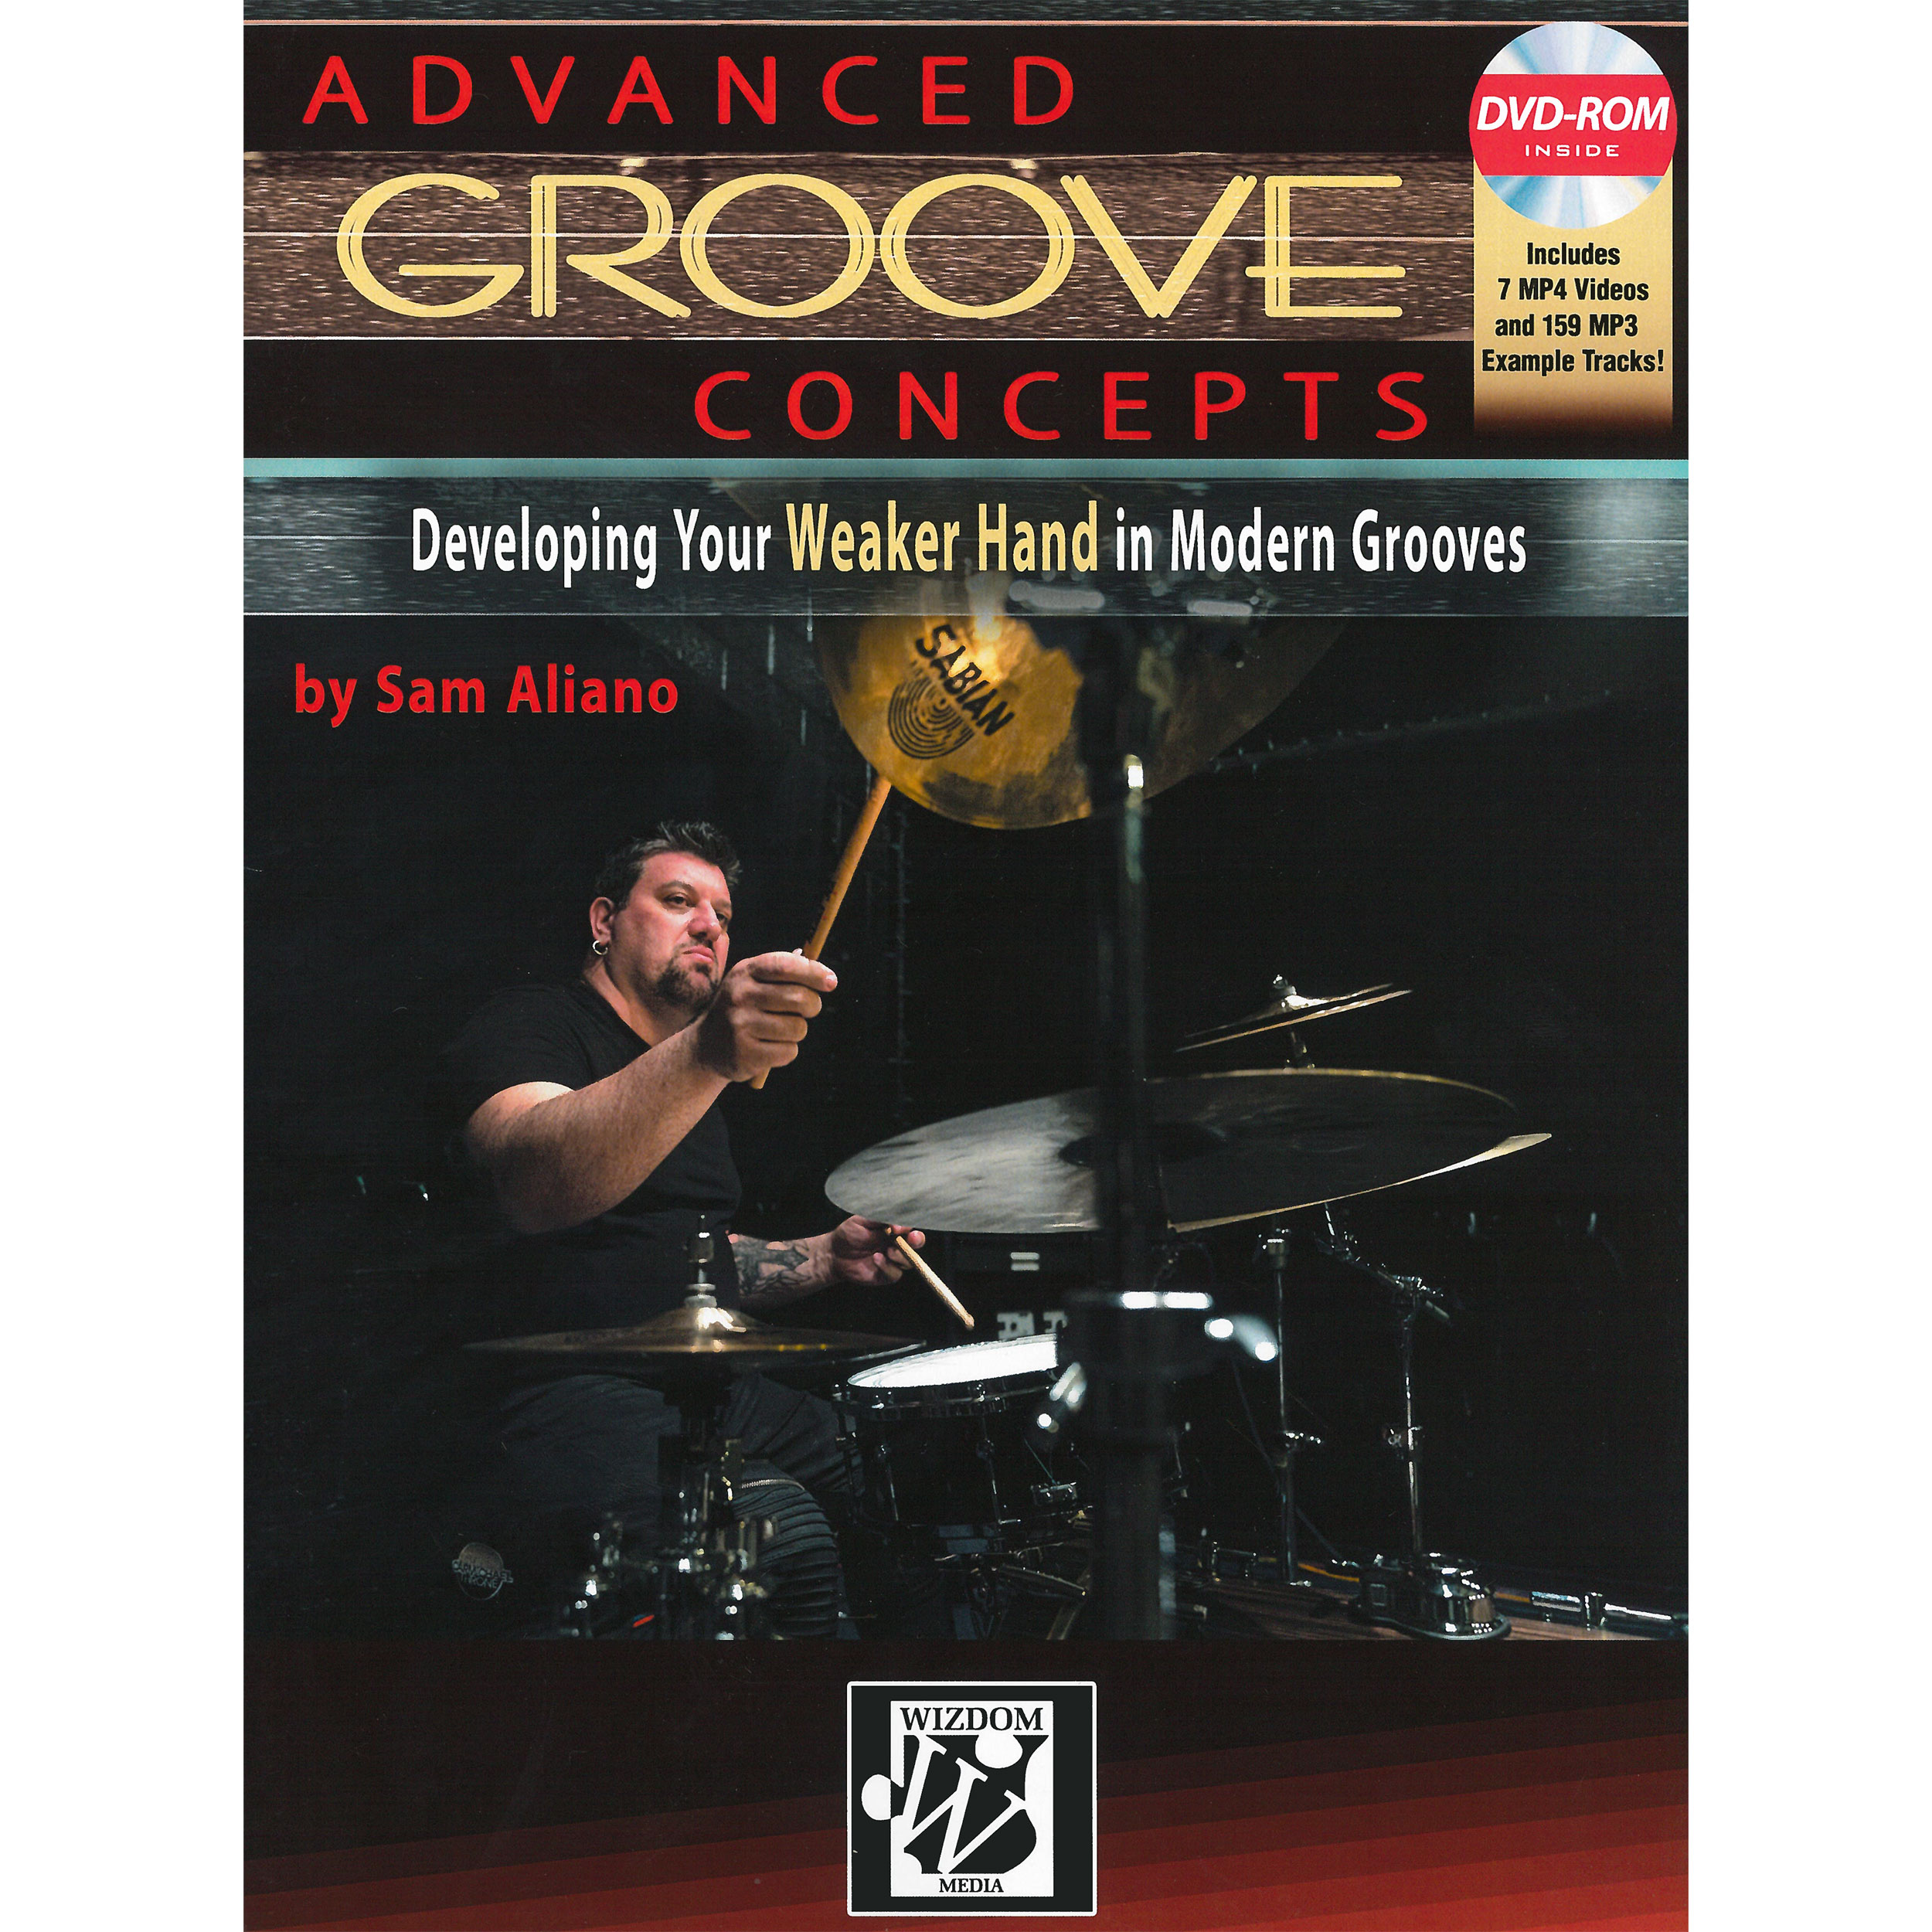 Advanced Groove Concepts by Sam Aliano (with DVD)